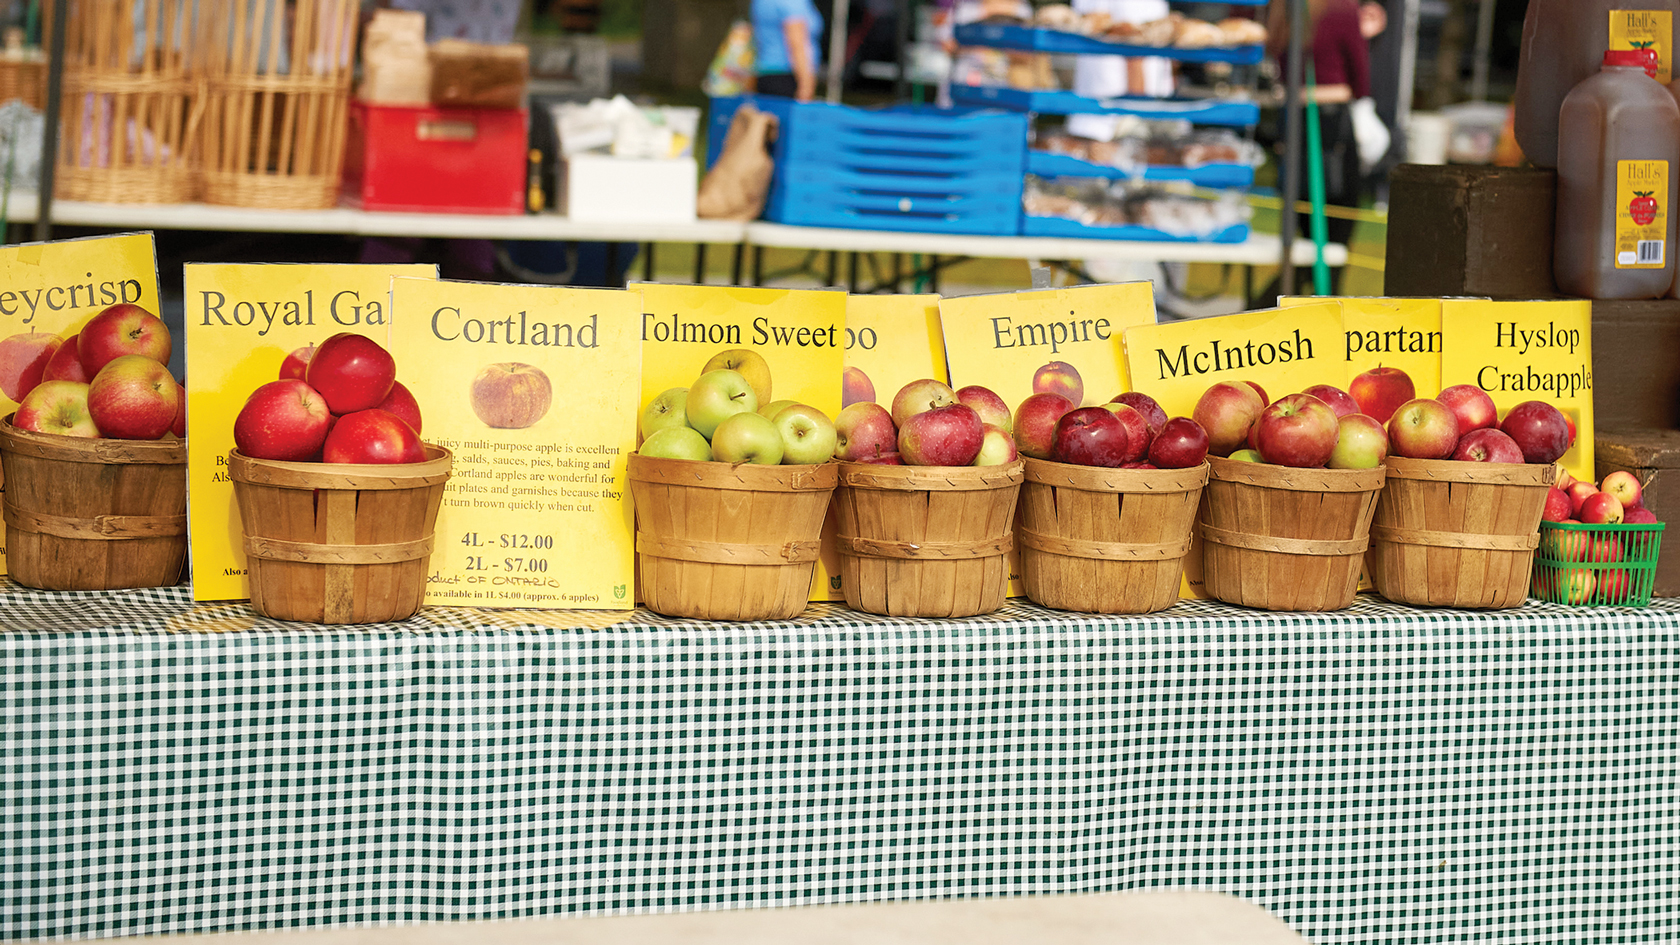 A photo of apples at Hall's market in Westboro.